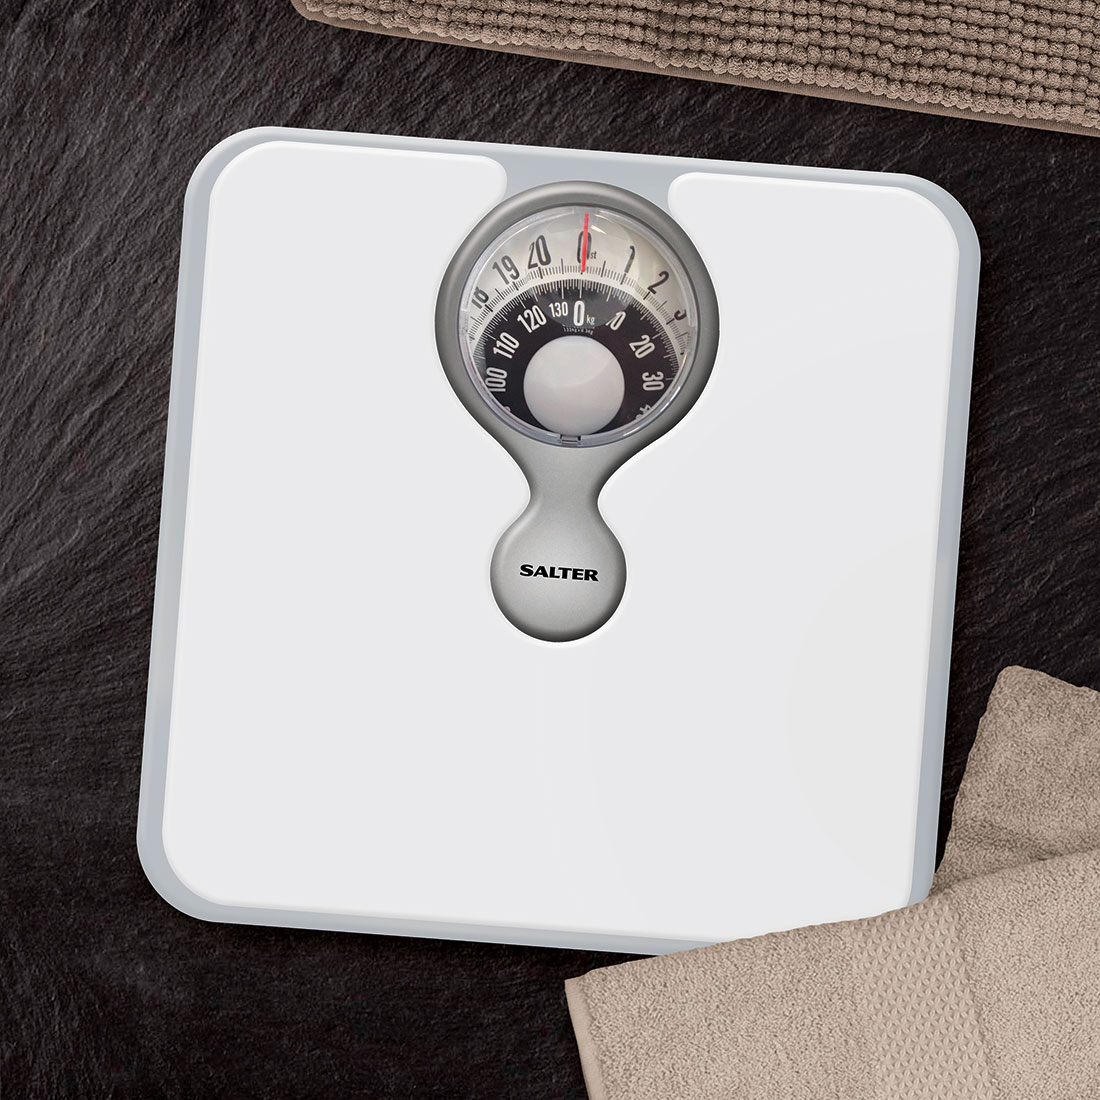 salter 484 magnified compact dial mechanical bathroom weighing scales - Bathroom Scales